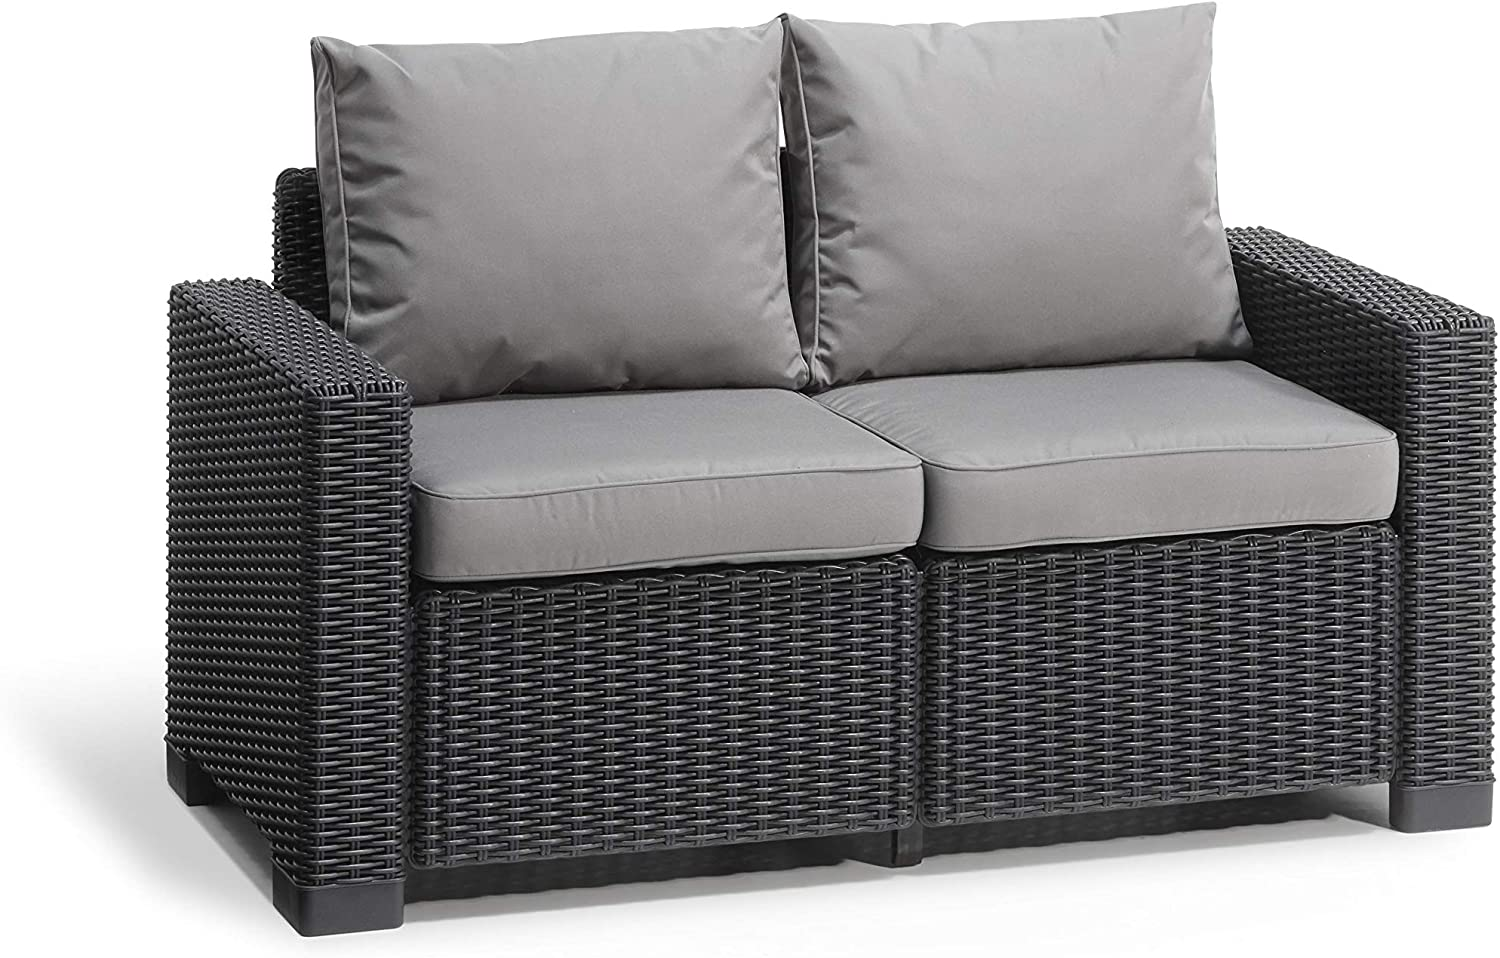 Allibert by Keter California 10 Seater Rattan Sofa Outdoor Garden Furniture  - Graphite with Grey Cushions